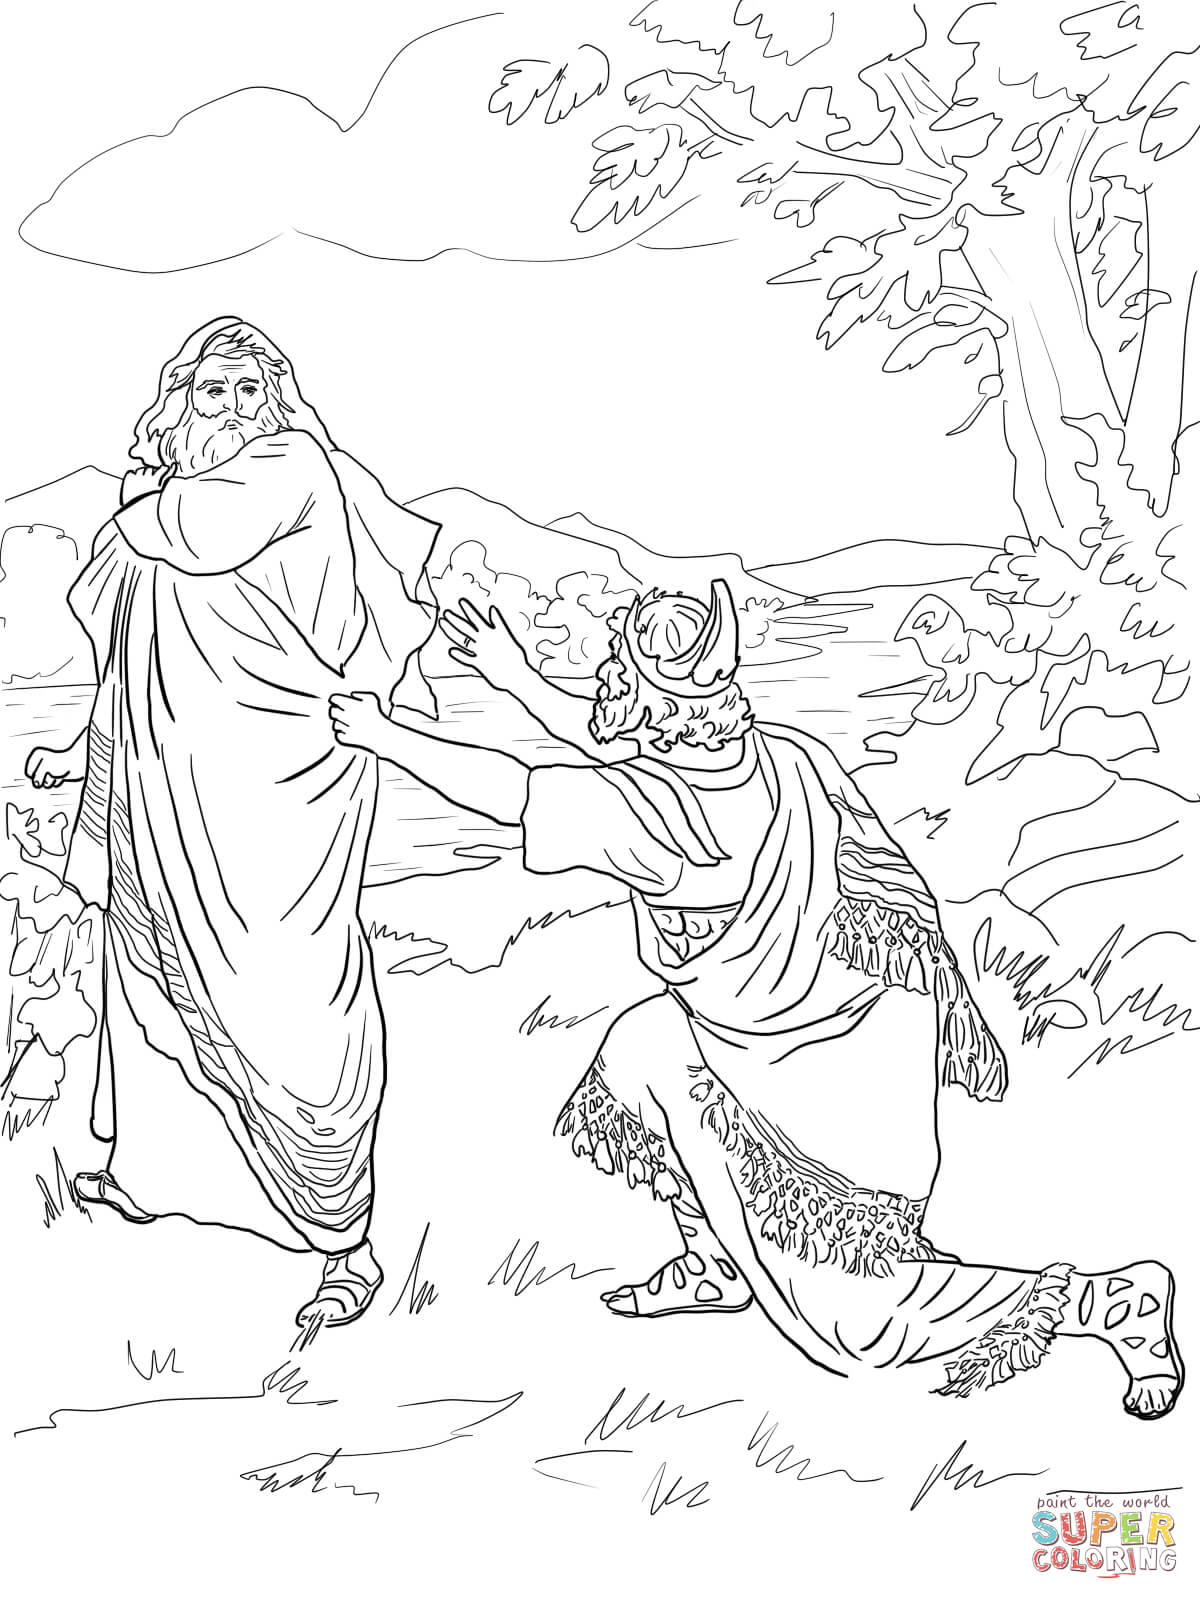 king saul coloring page saul rejected as king coloring page free printable coloring page king saul